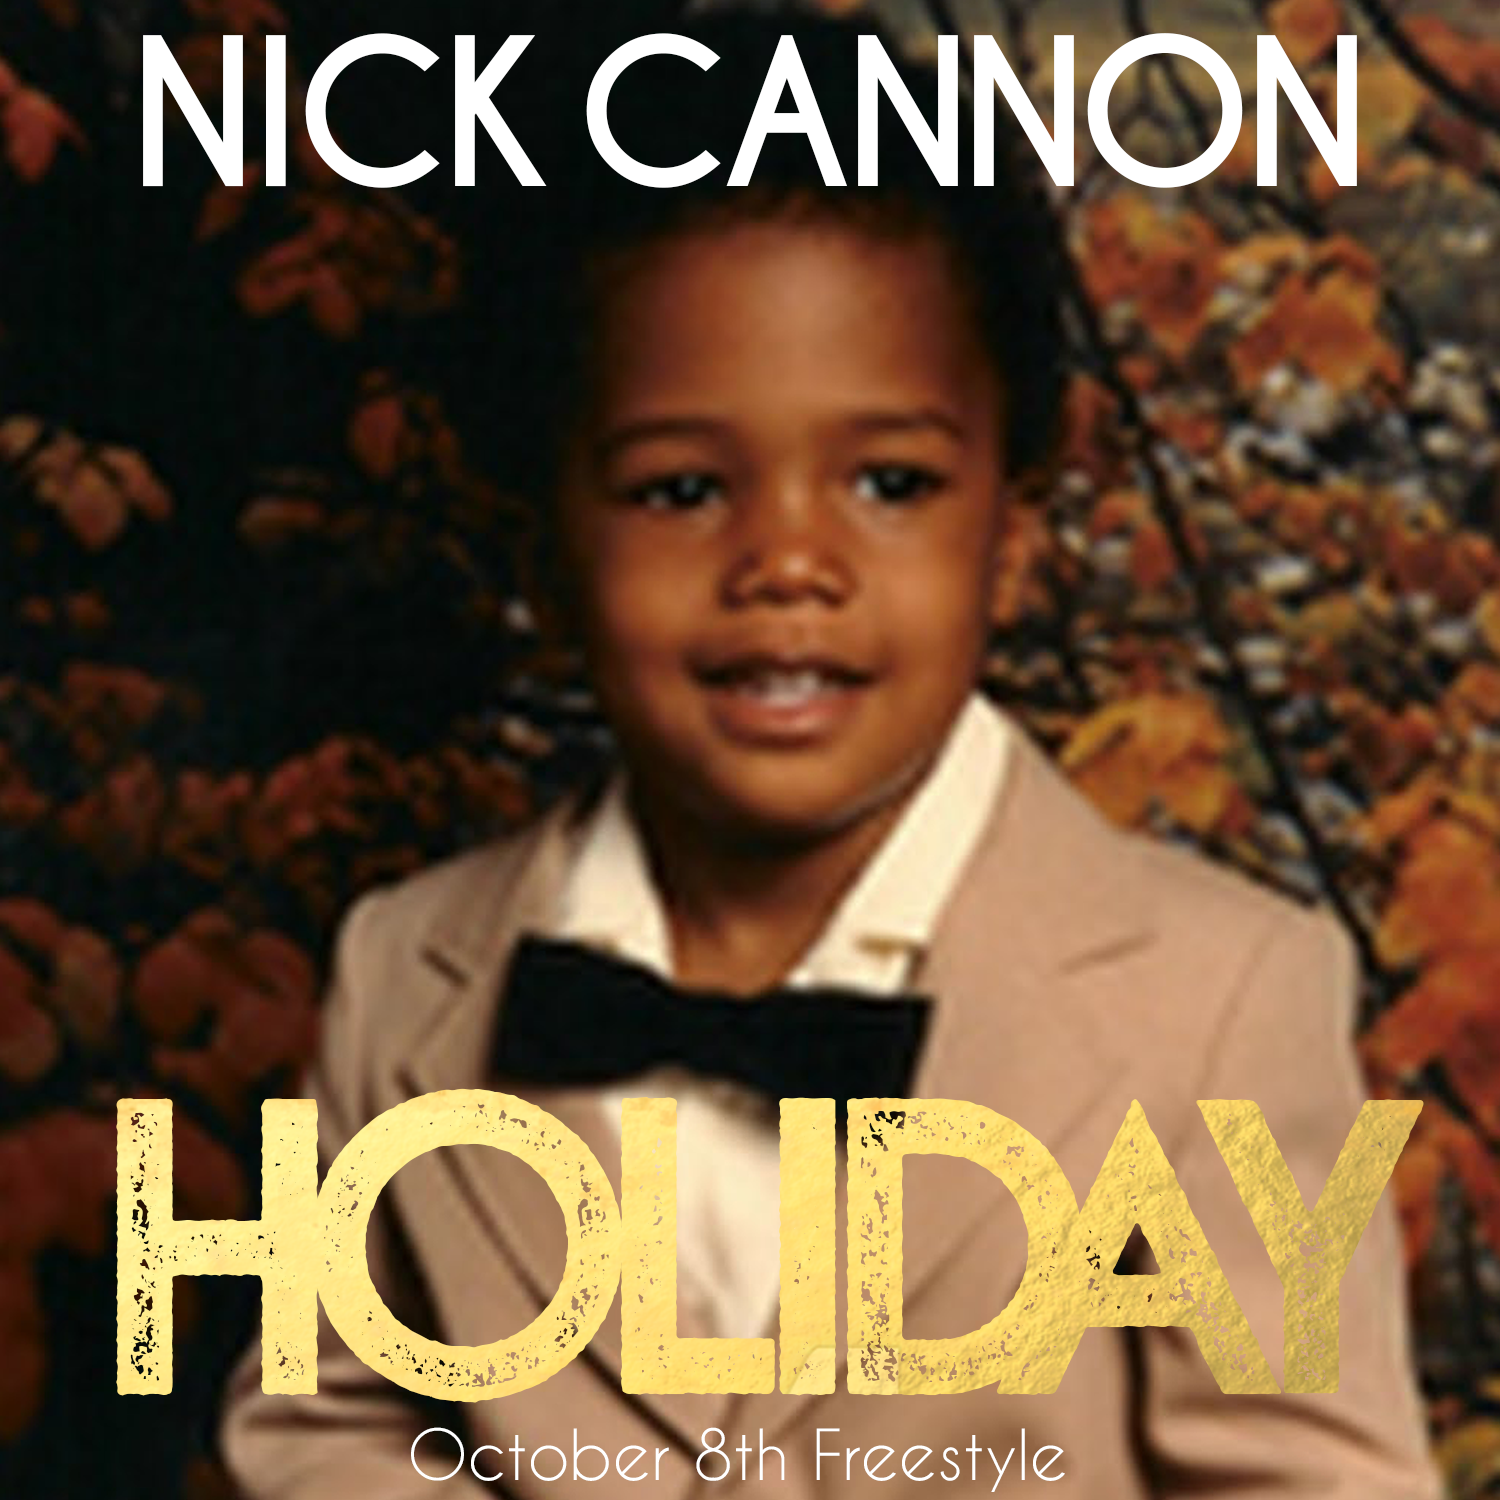 NEW MUSIC: Nick Cannon – Holiday (October 8th Freestyle)